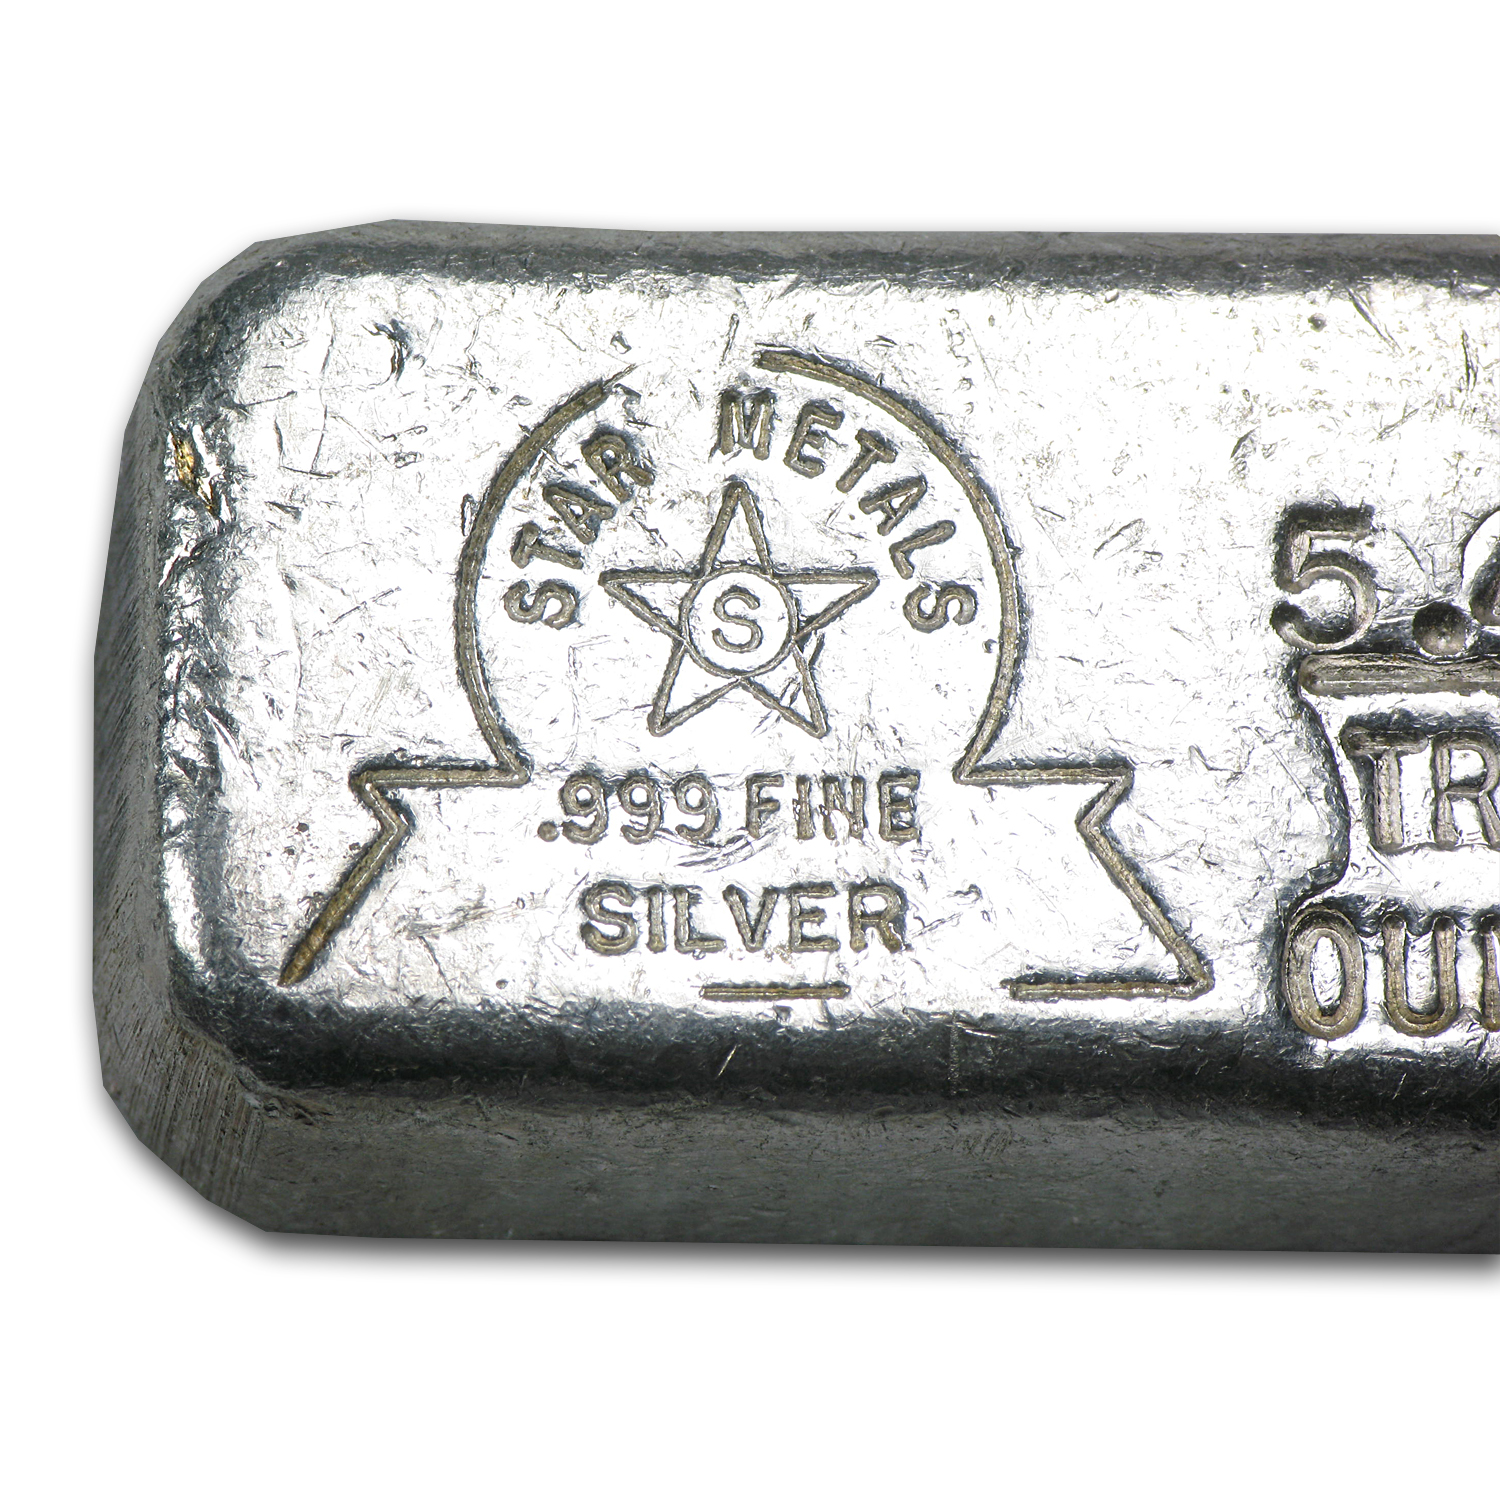 5.45 oz Silver Bar - Star Metals